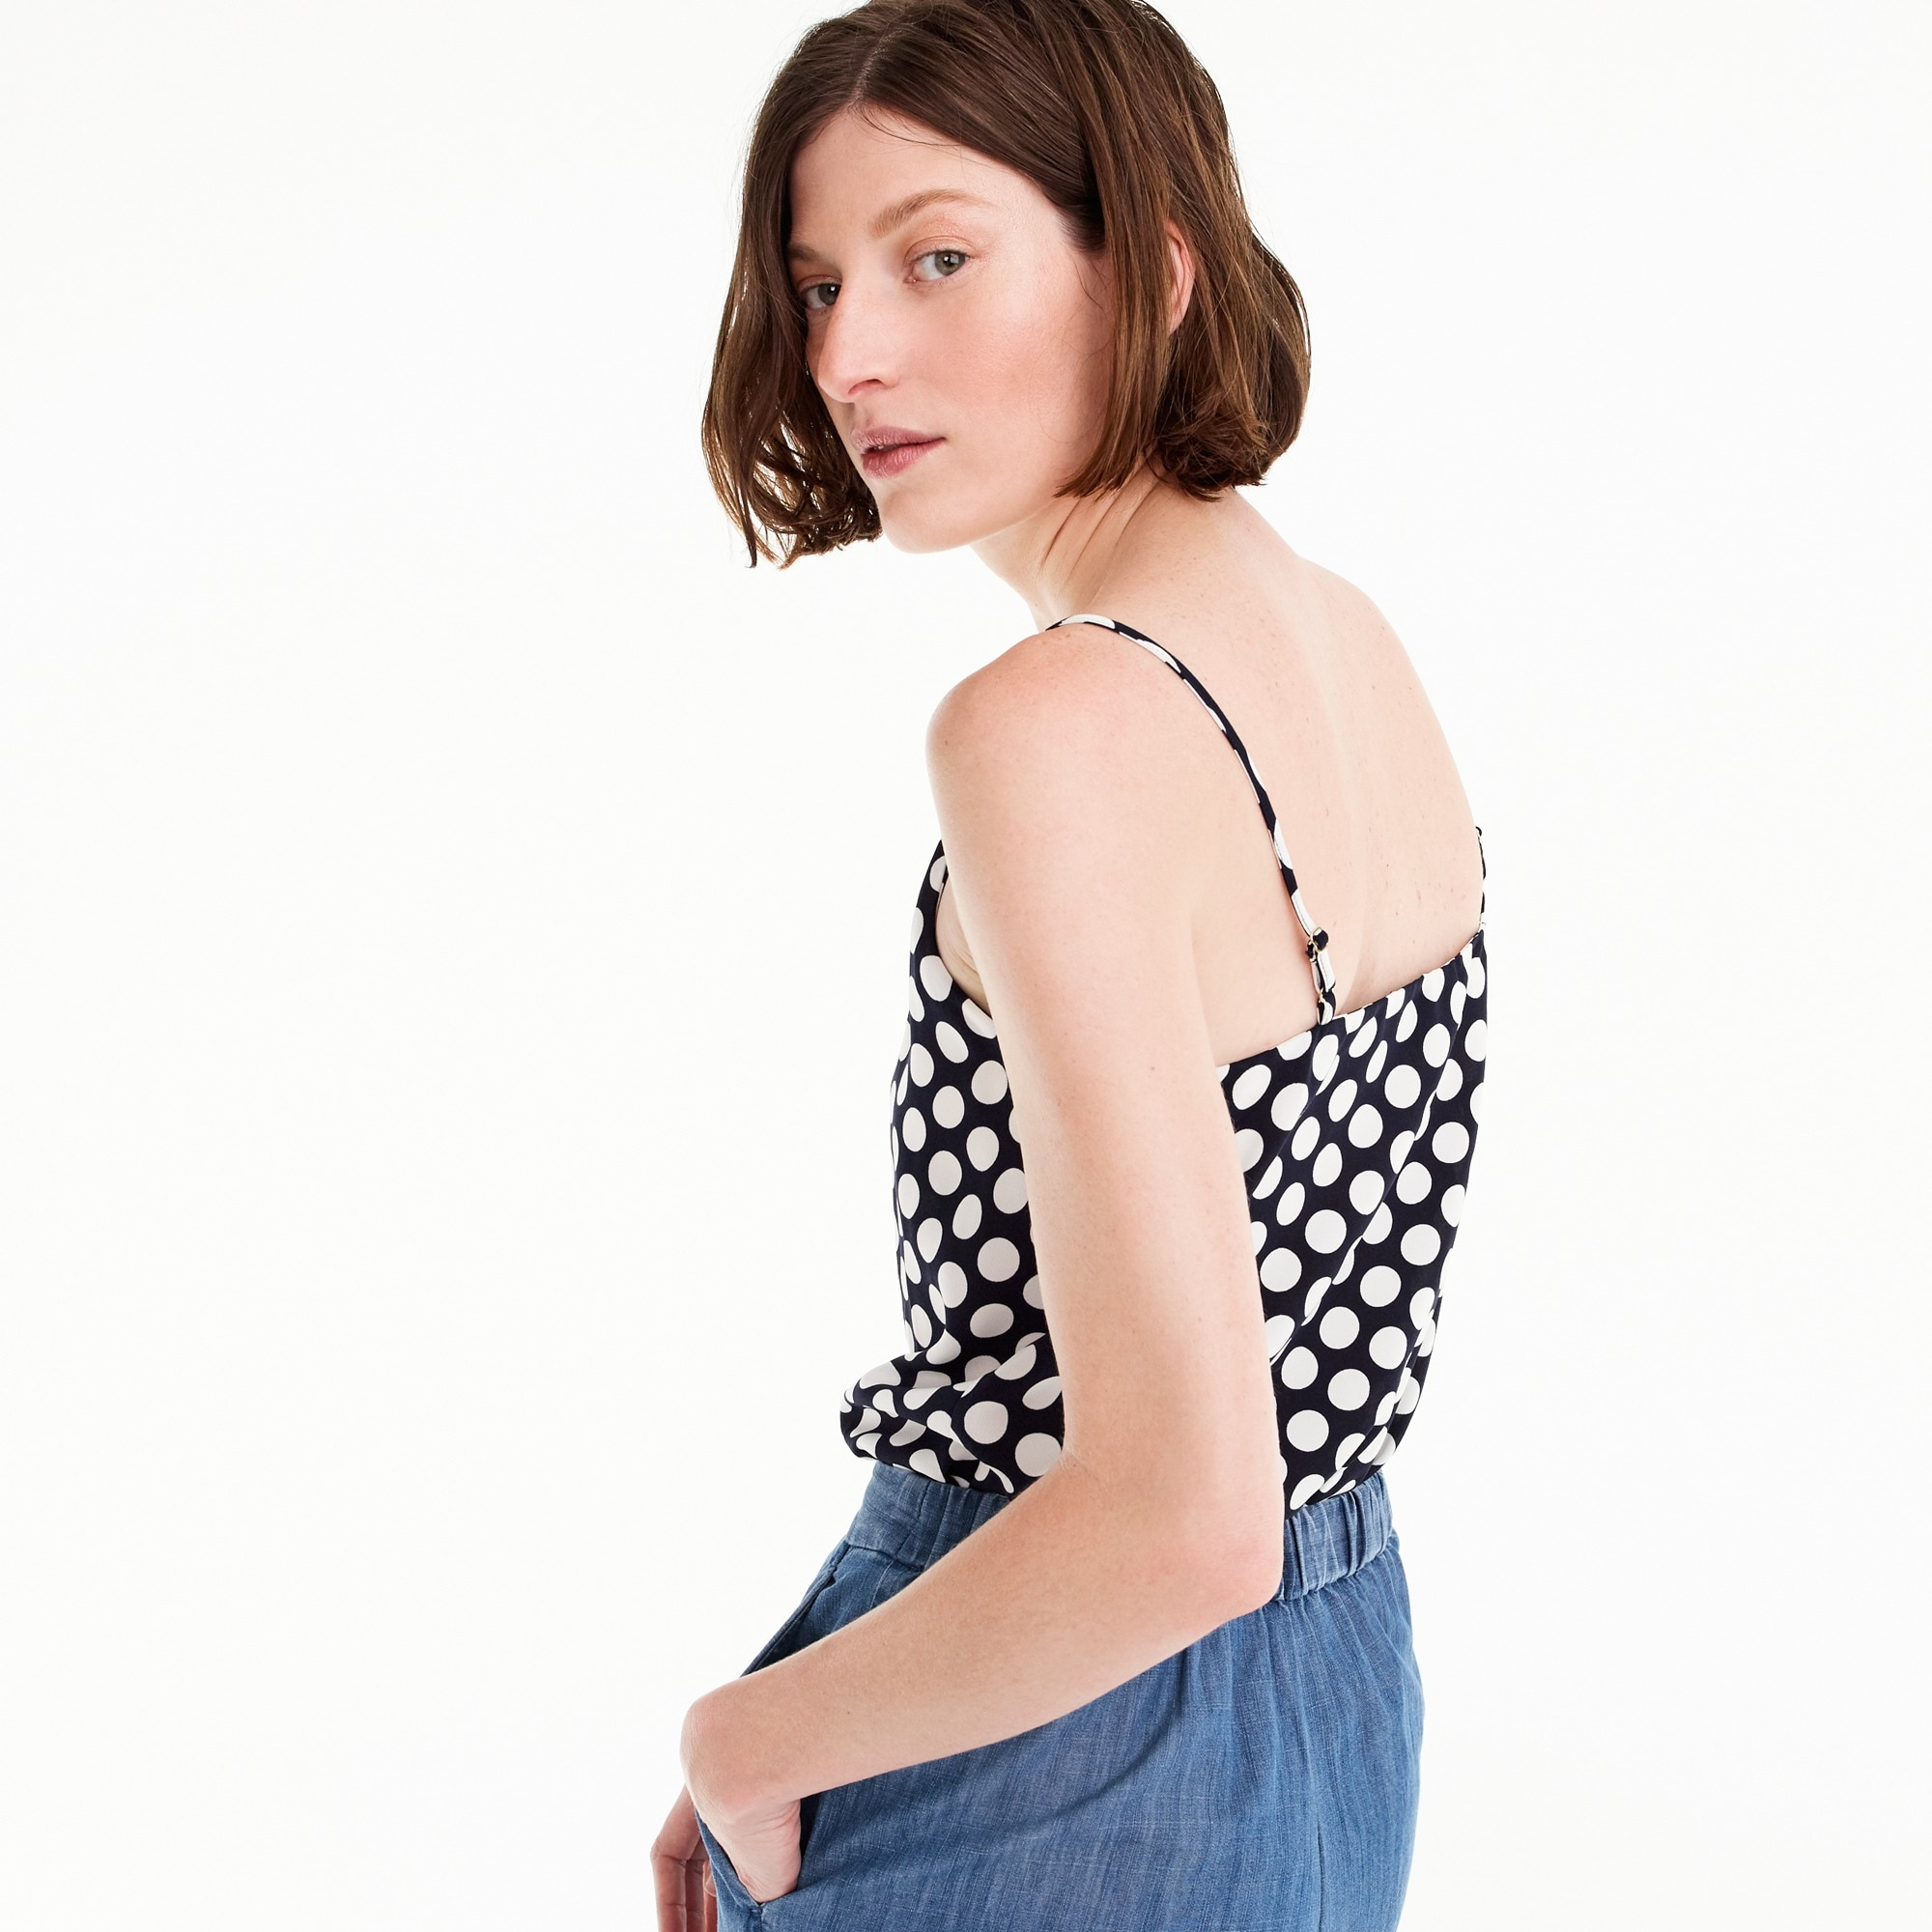 Image 3 for Tall V-neck camisole in dot